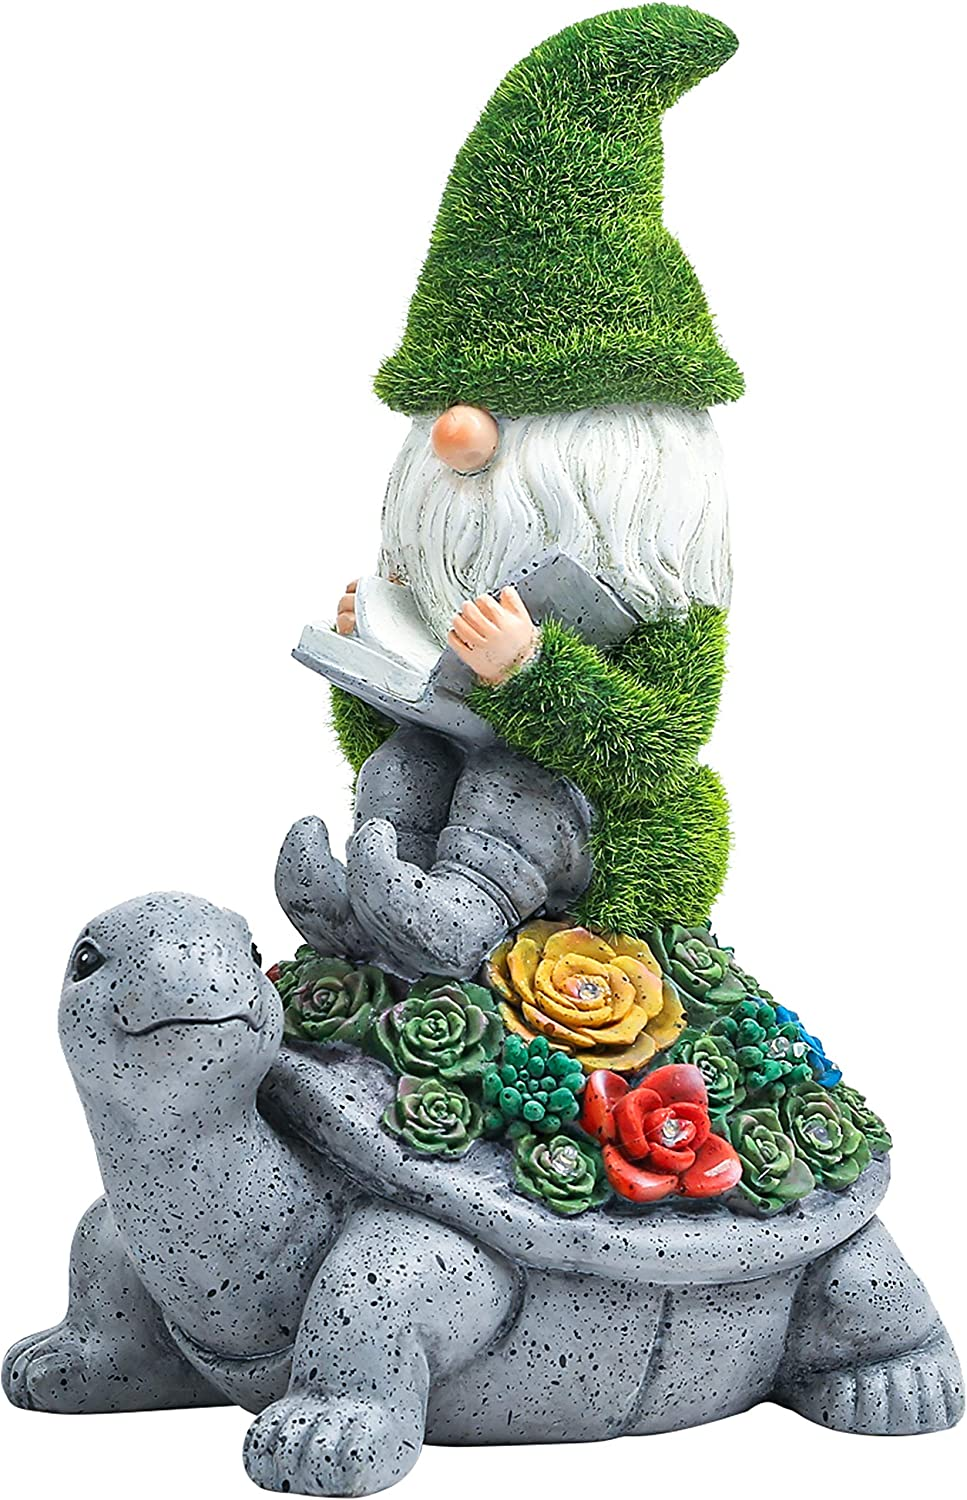 Flocked Garden Statue Gnome Cute - Large Outdoor Gnome Statue Sculptures with Solar Lights, Resin Gnome Figurine Sitting on Turtle Reading Book for Home Patio Yard Lawn Porch Decorations